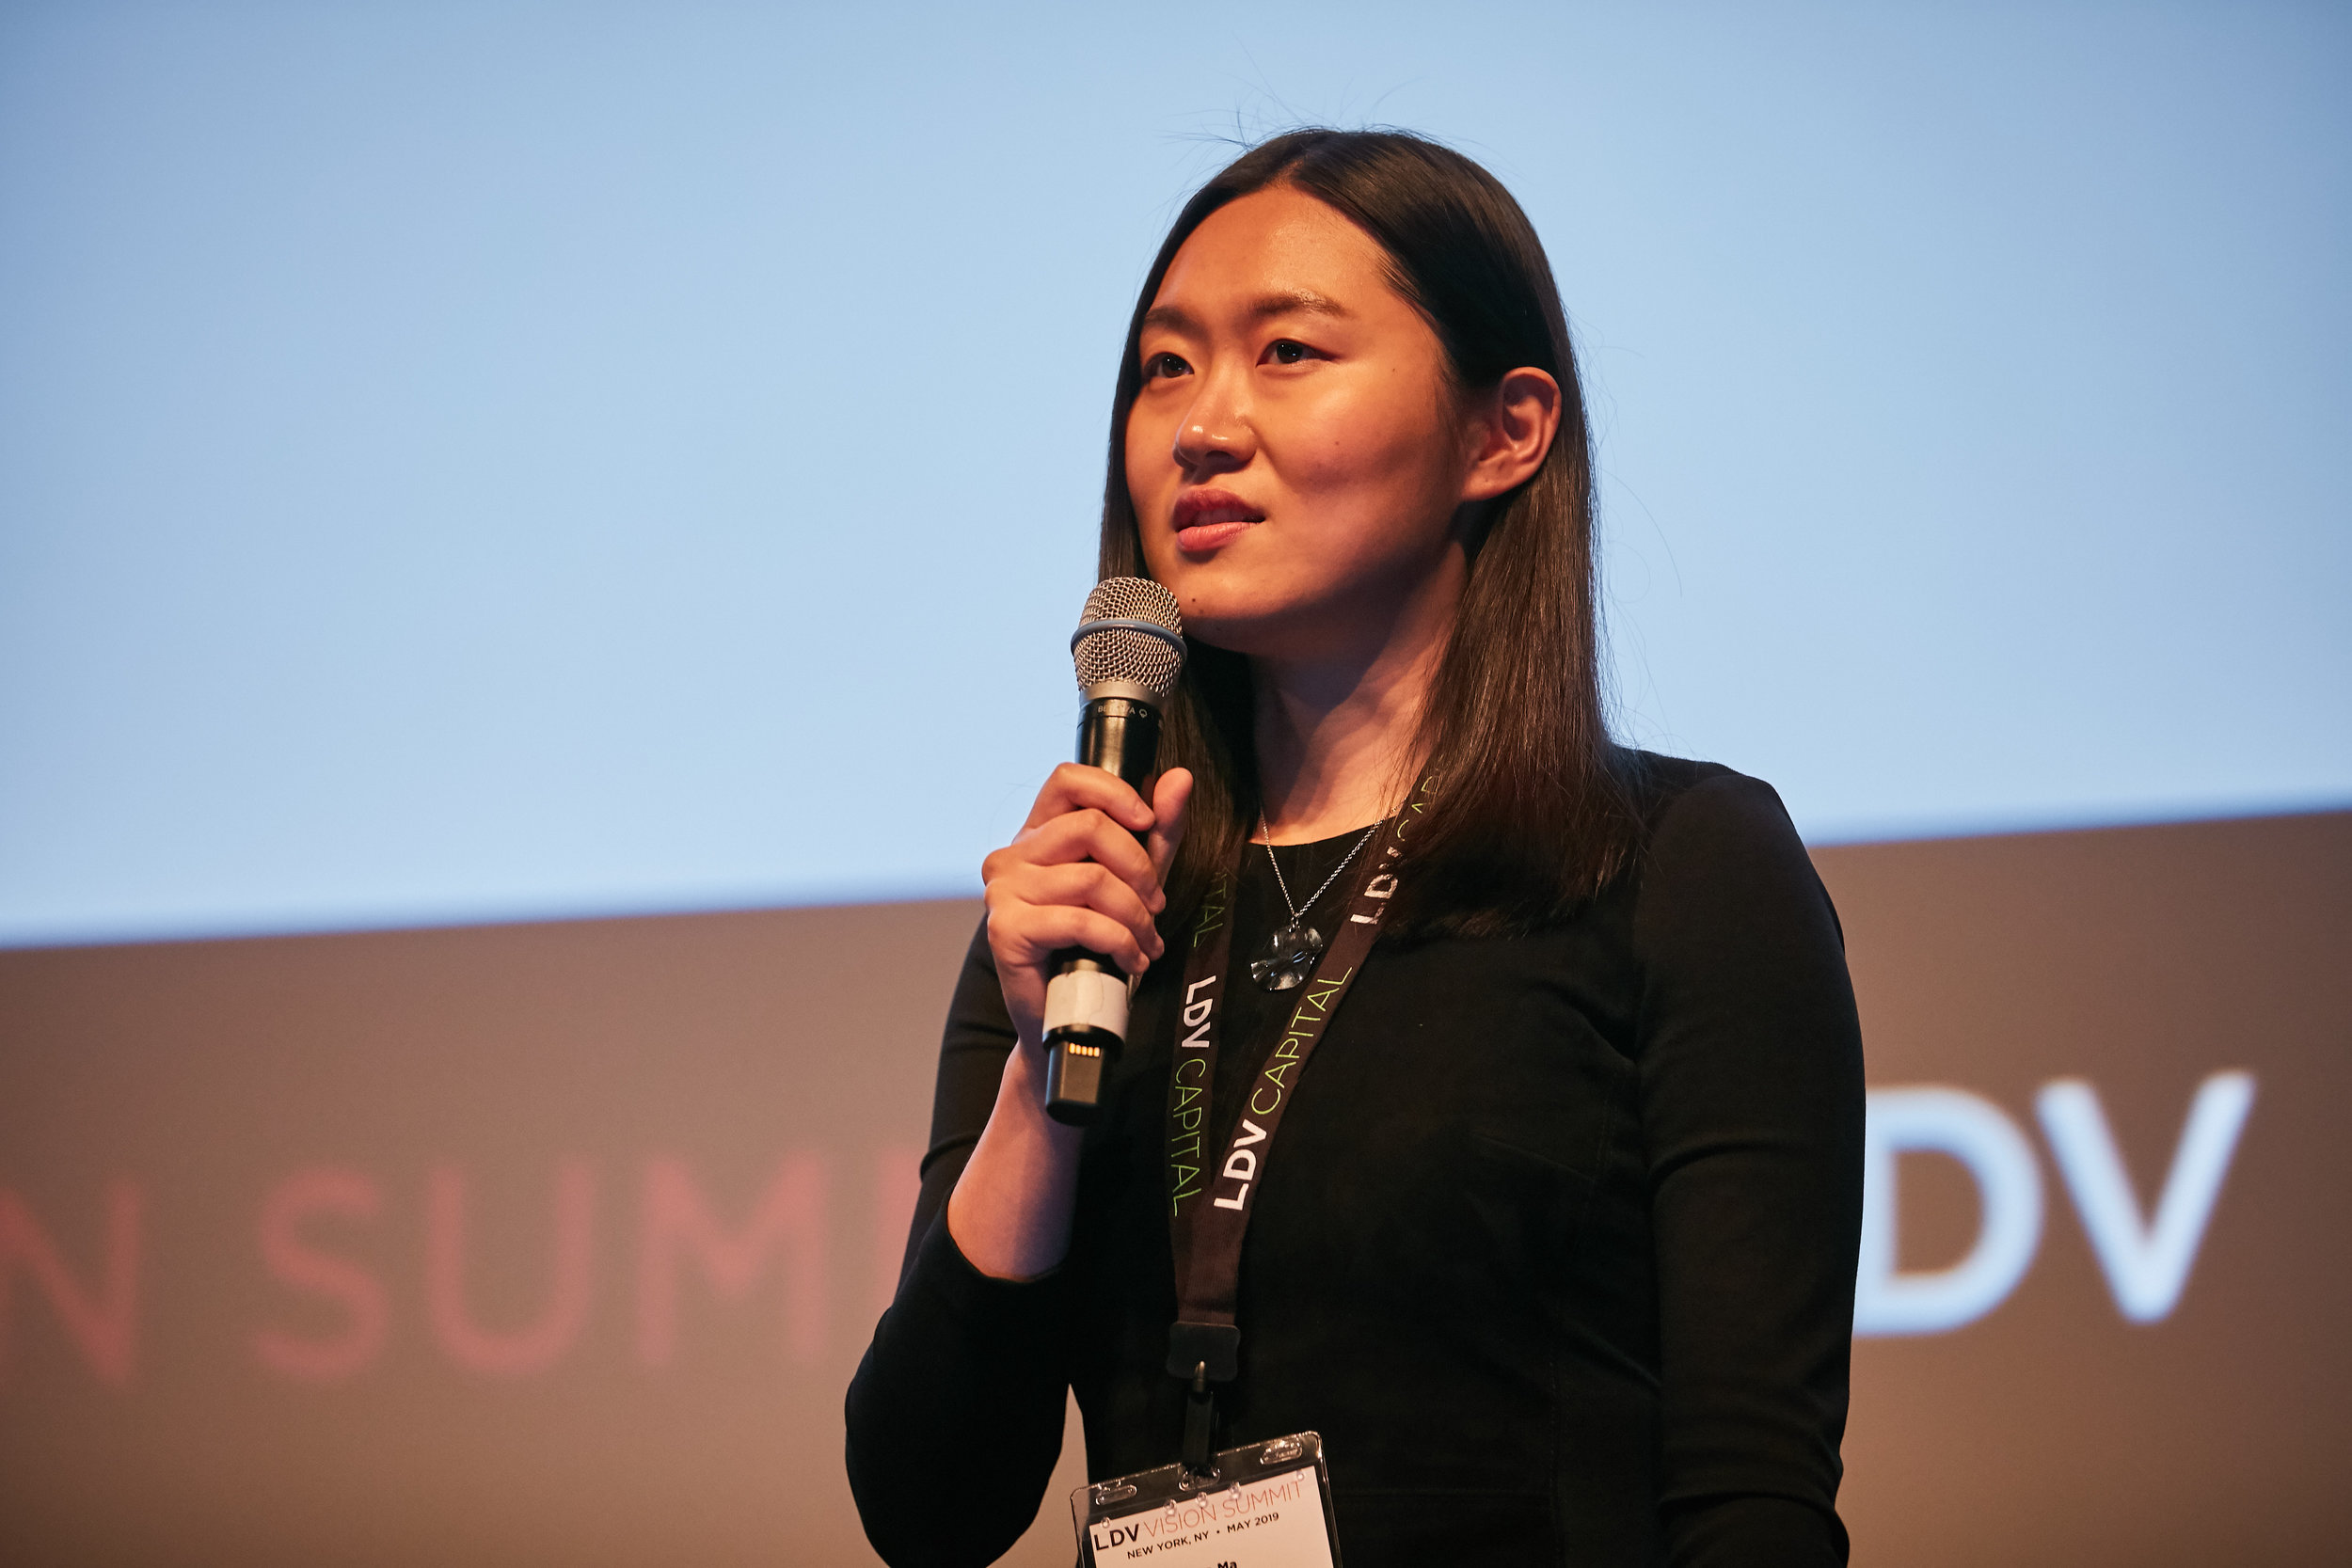 Xiao Ma, Cornell Tech PhD ©Robert Wright/LDV Vision Summit 2019